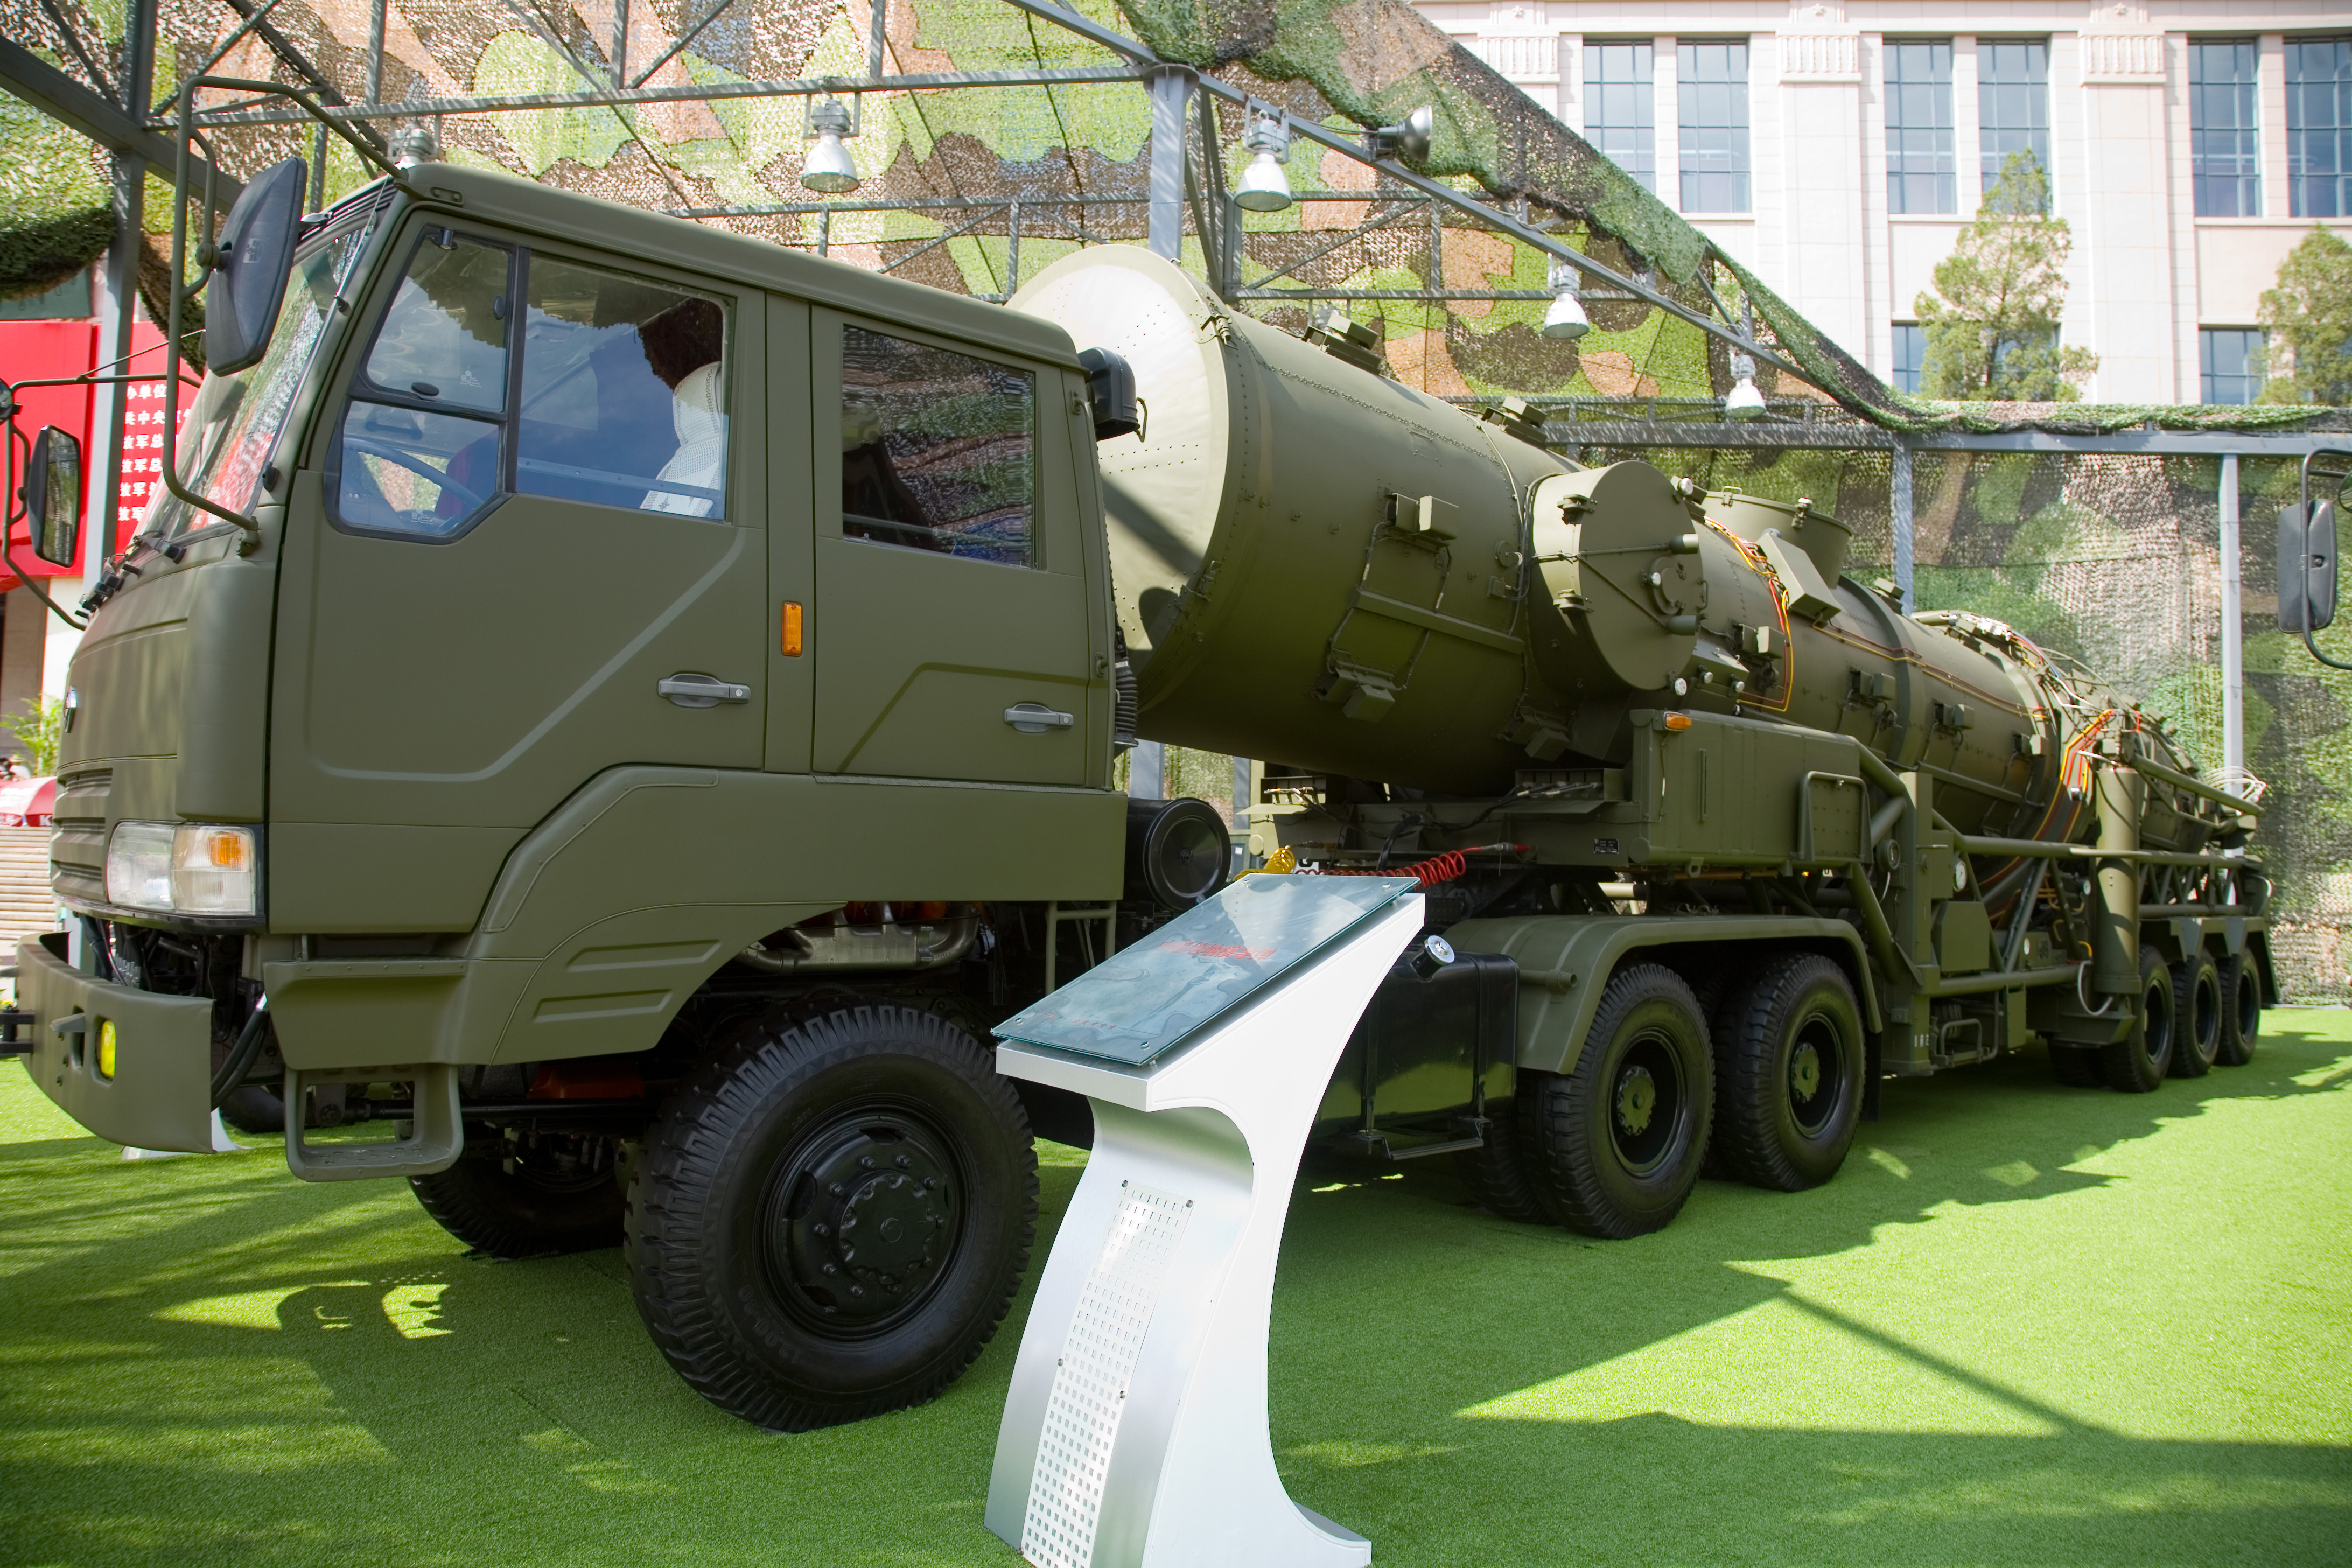 A DF-21A transporter-erector-launcher. The DF-21D ASBM is based on the DF-21A.